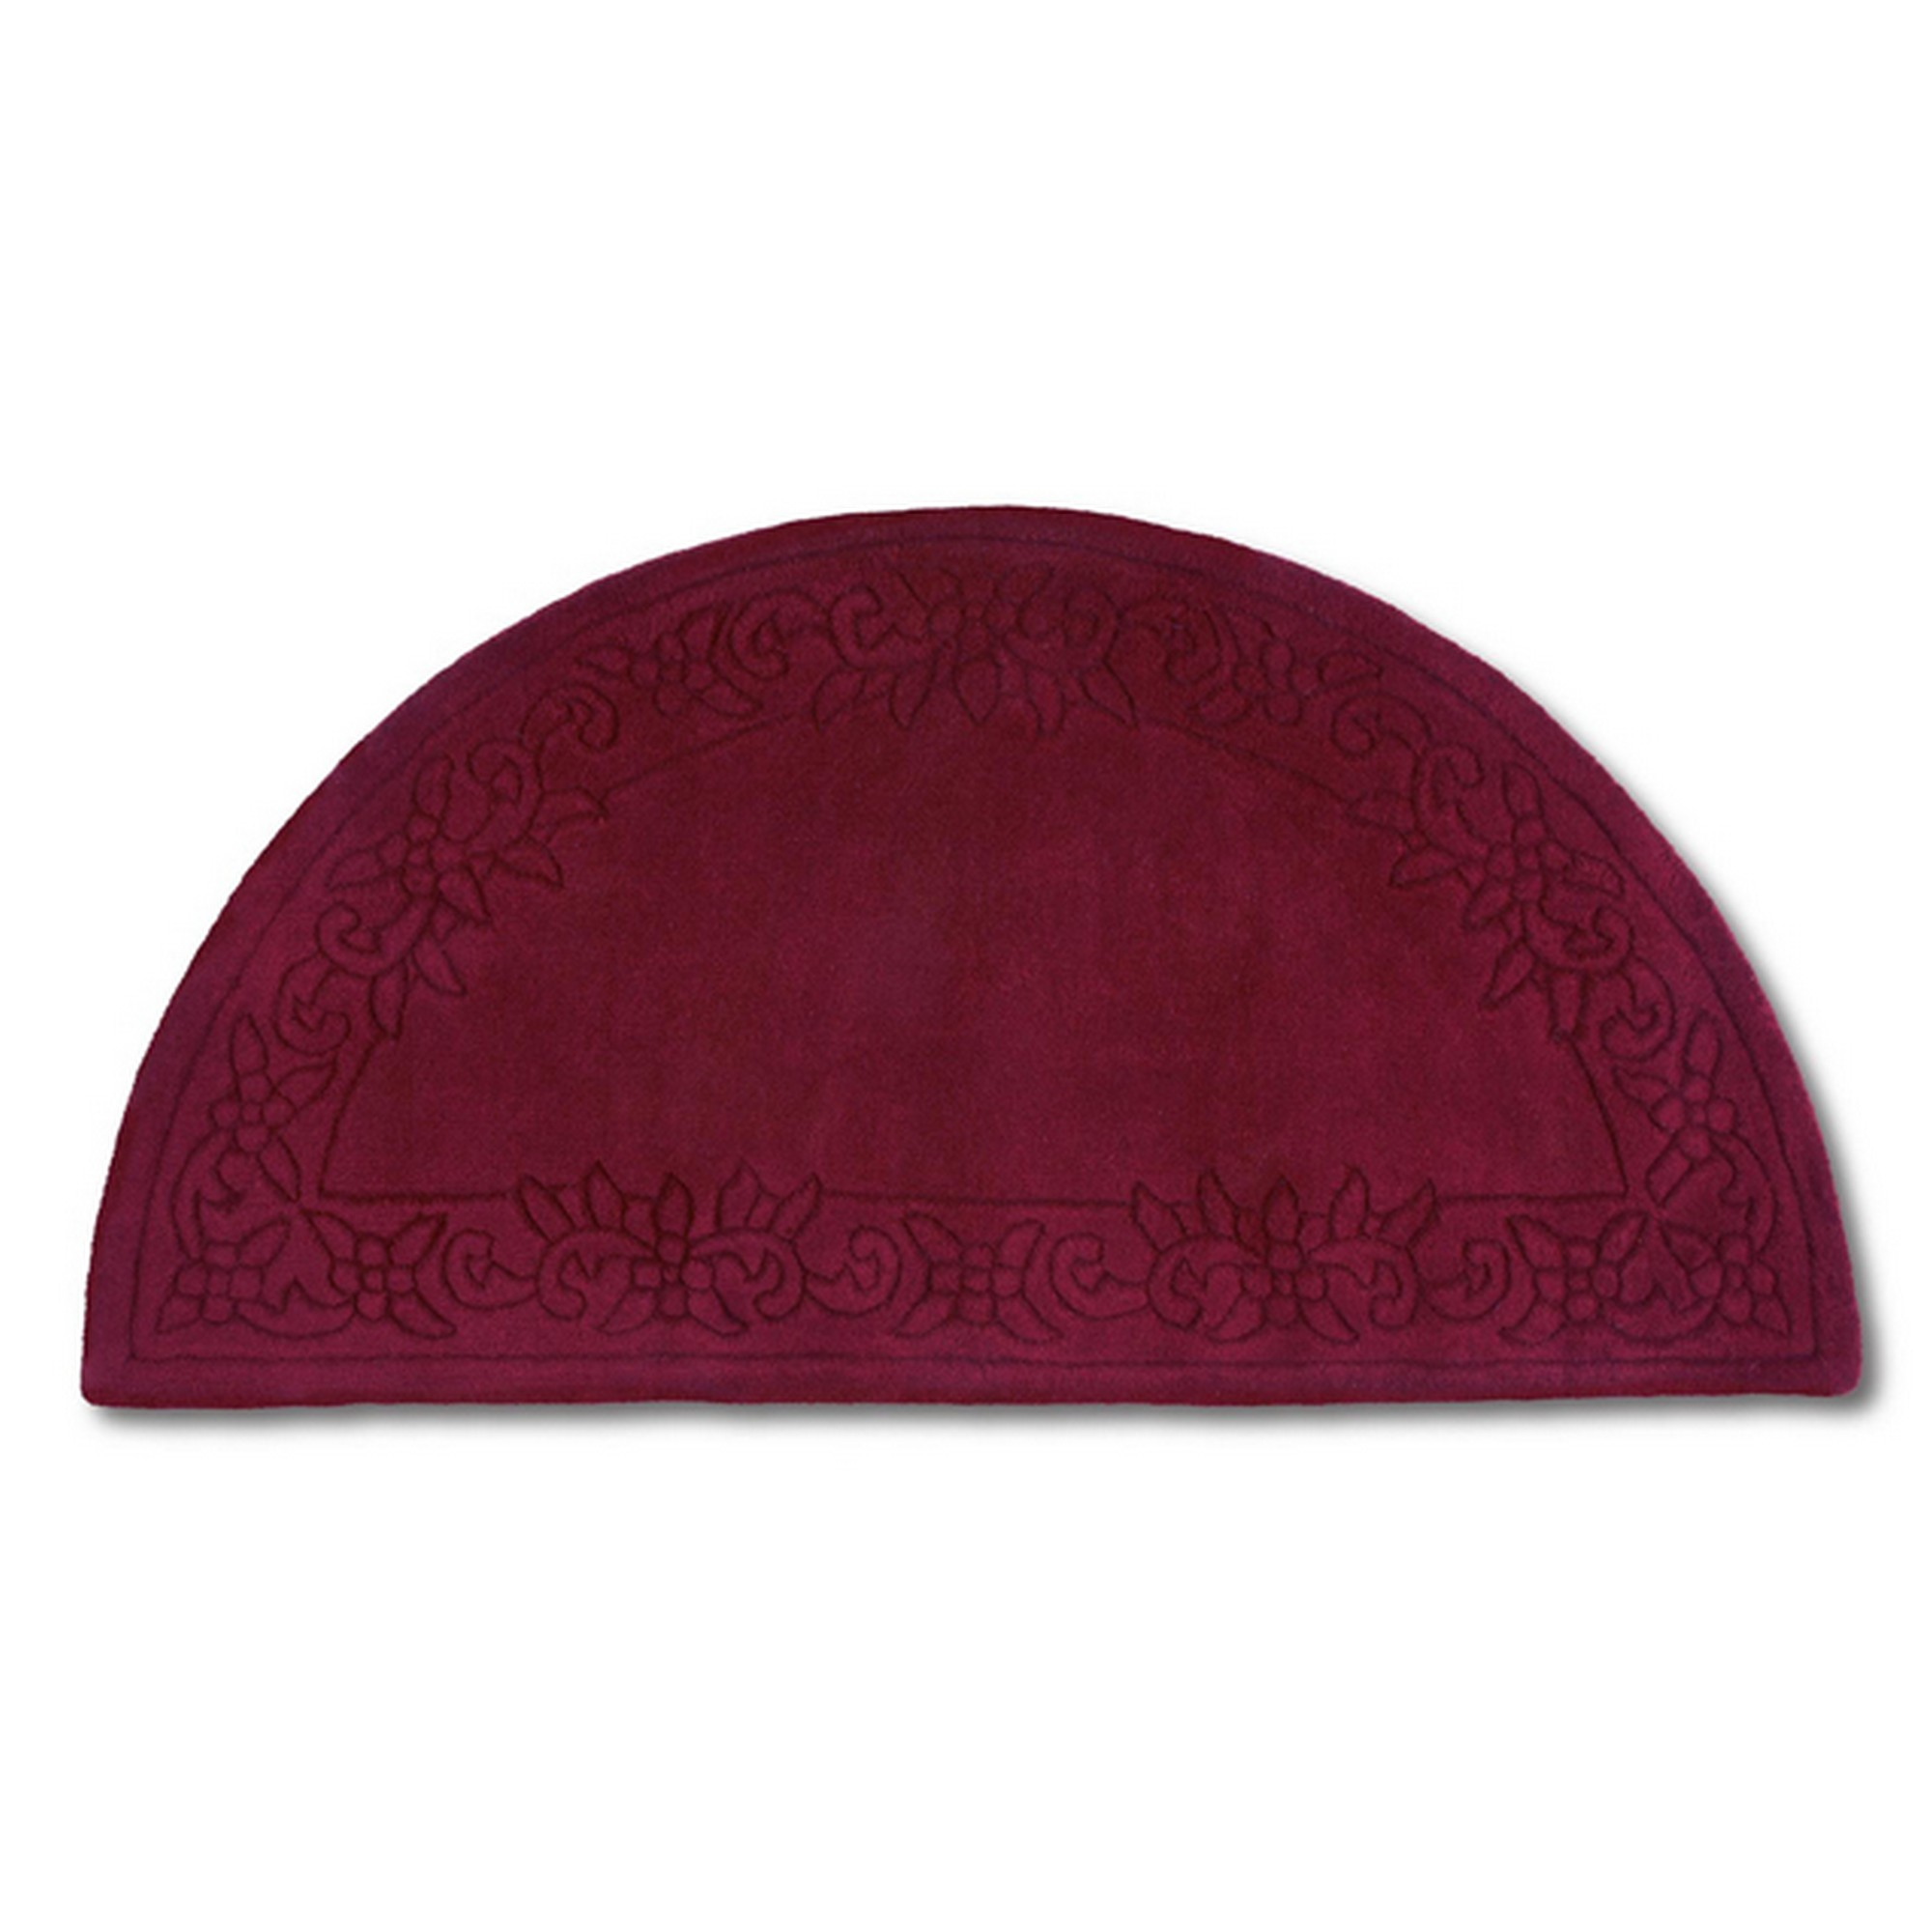 Royale Half Moon - Traditional Indian Wool in Wine